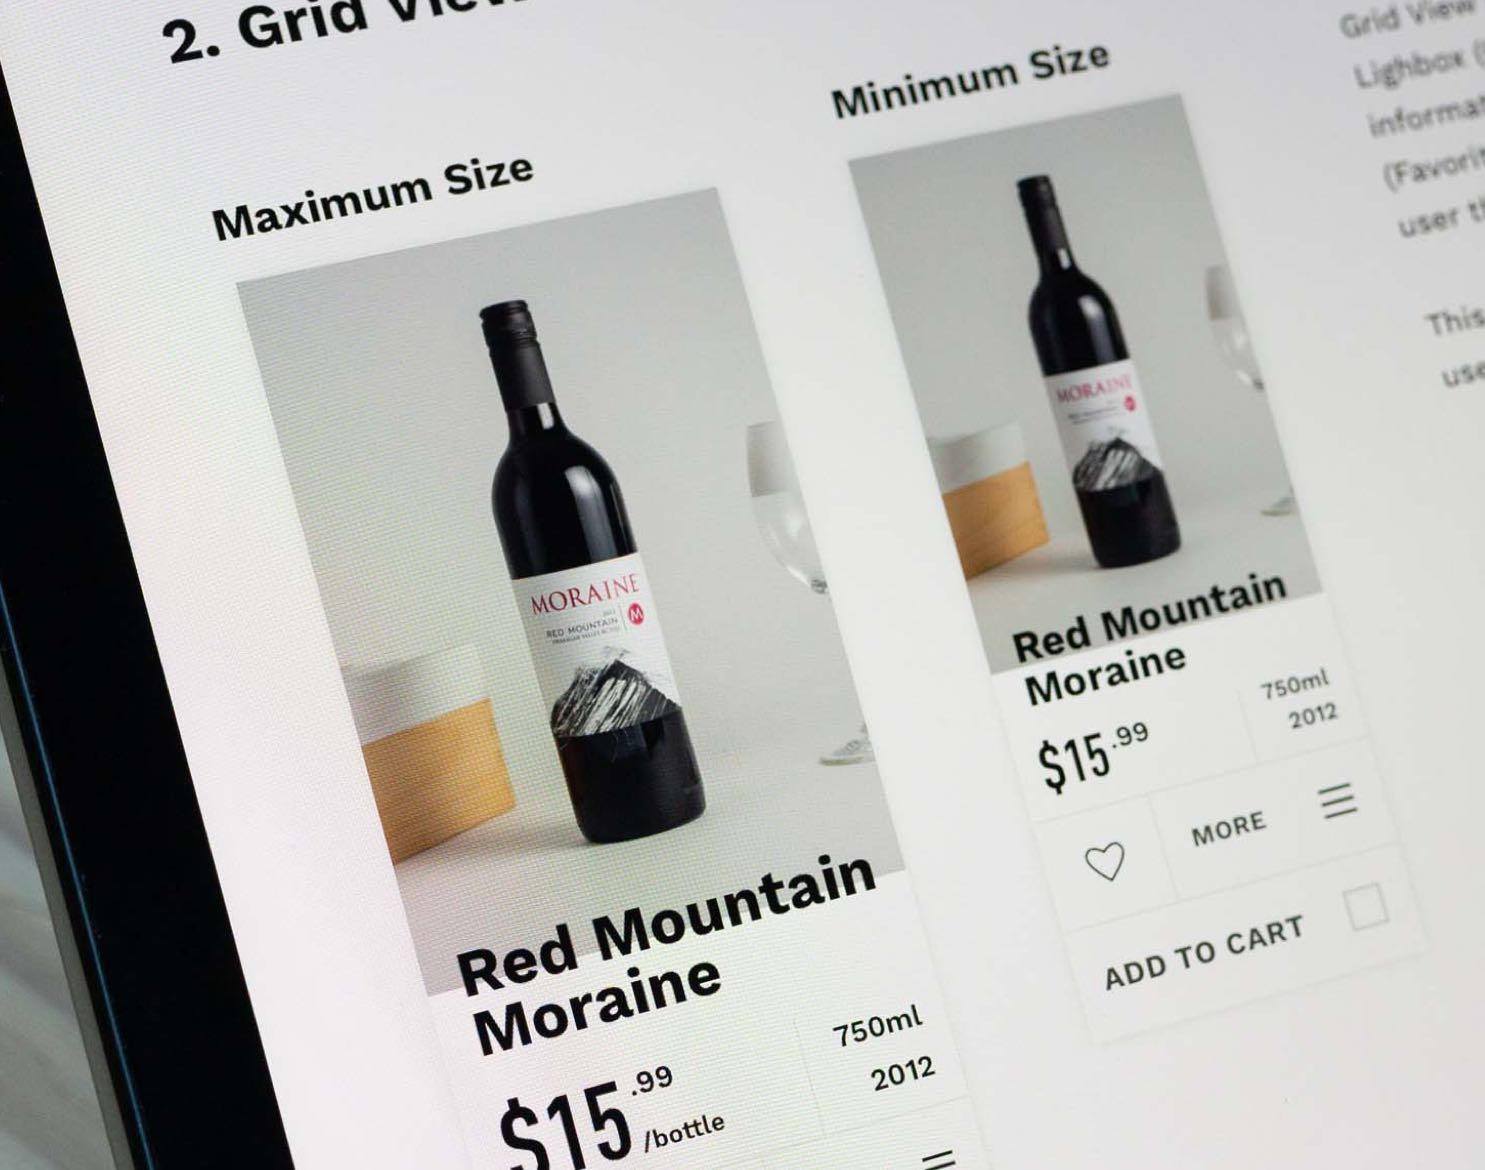 New Districts Red Mountain Moraine E-Commerce grid view product variants — by Yagnyuk.